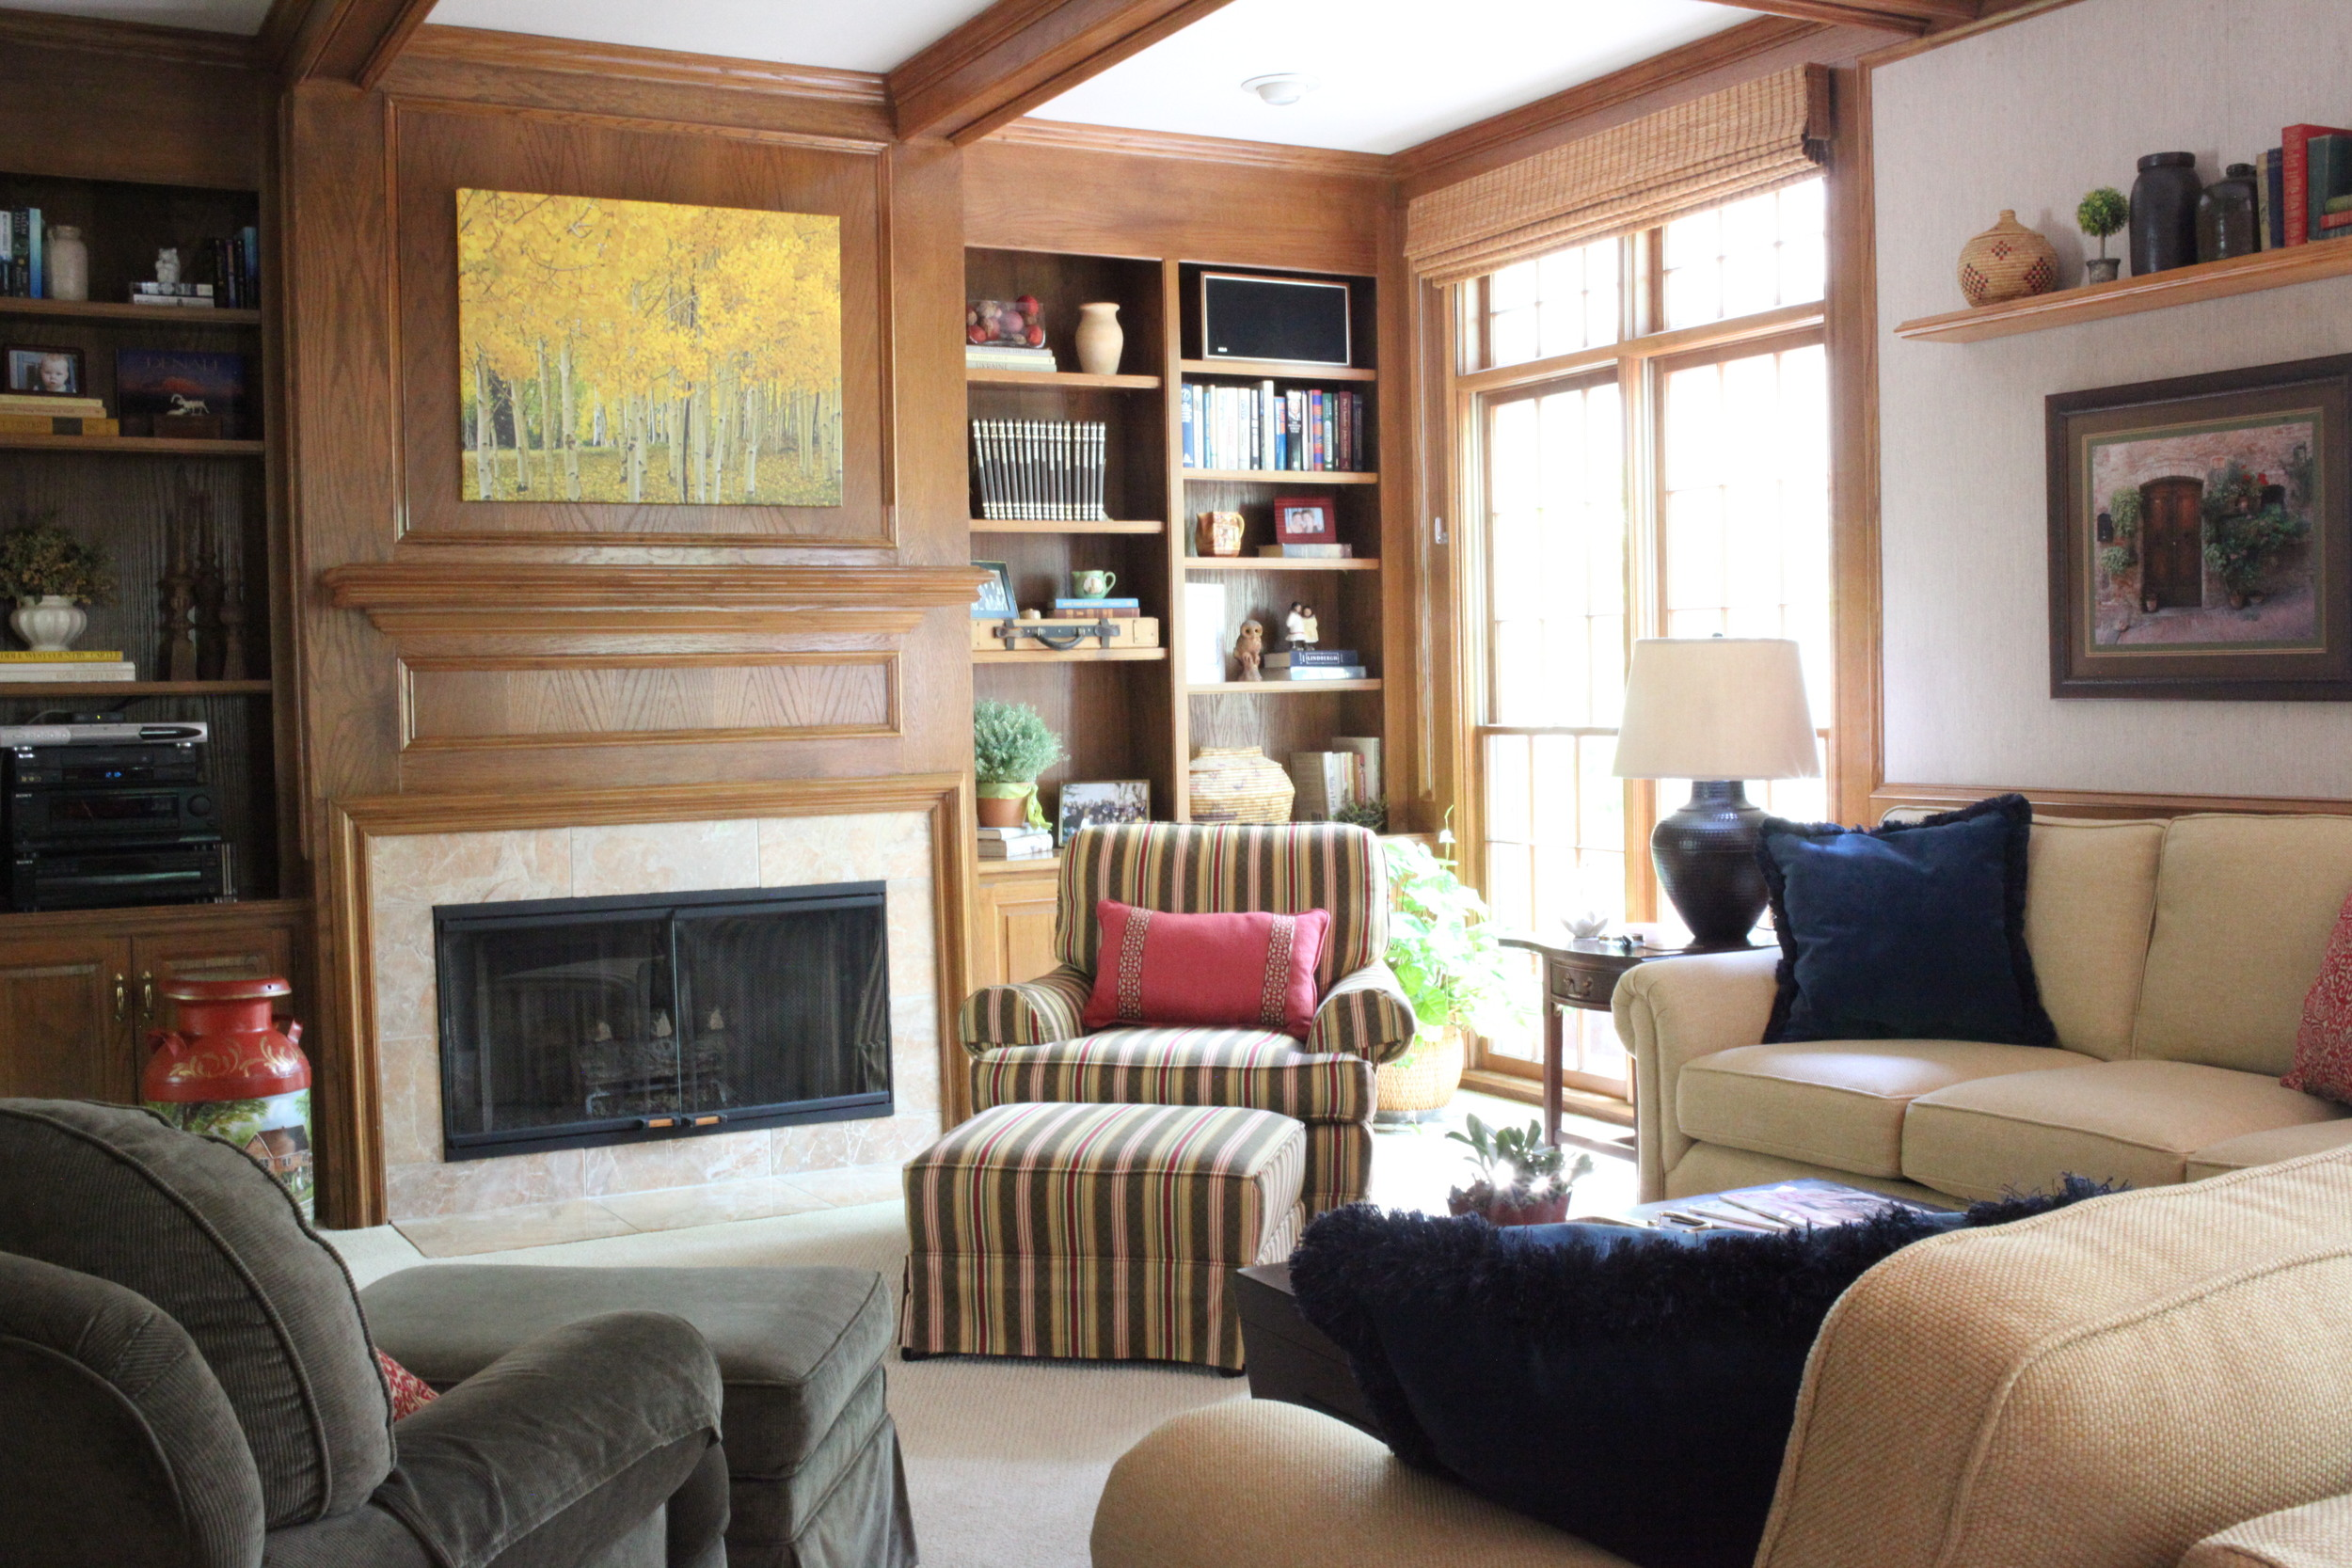 Coffered ceiling cozy living room with fireplace, striped chair, blue pillows, and wood paneling